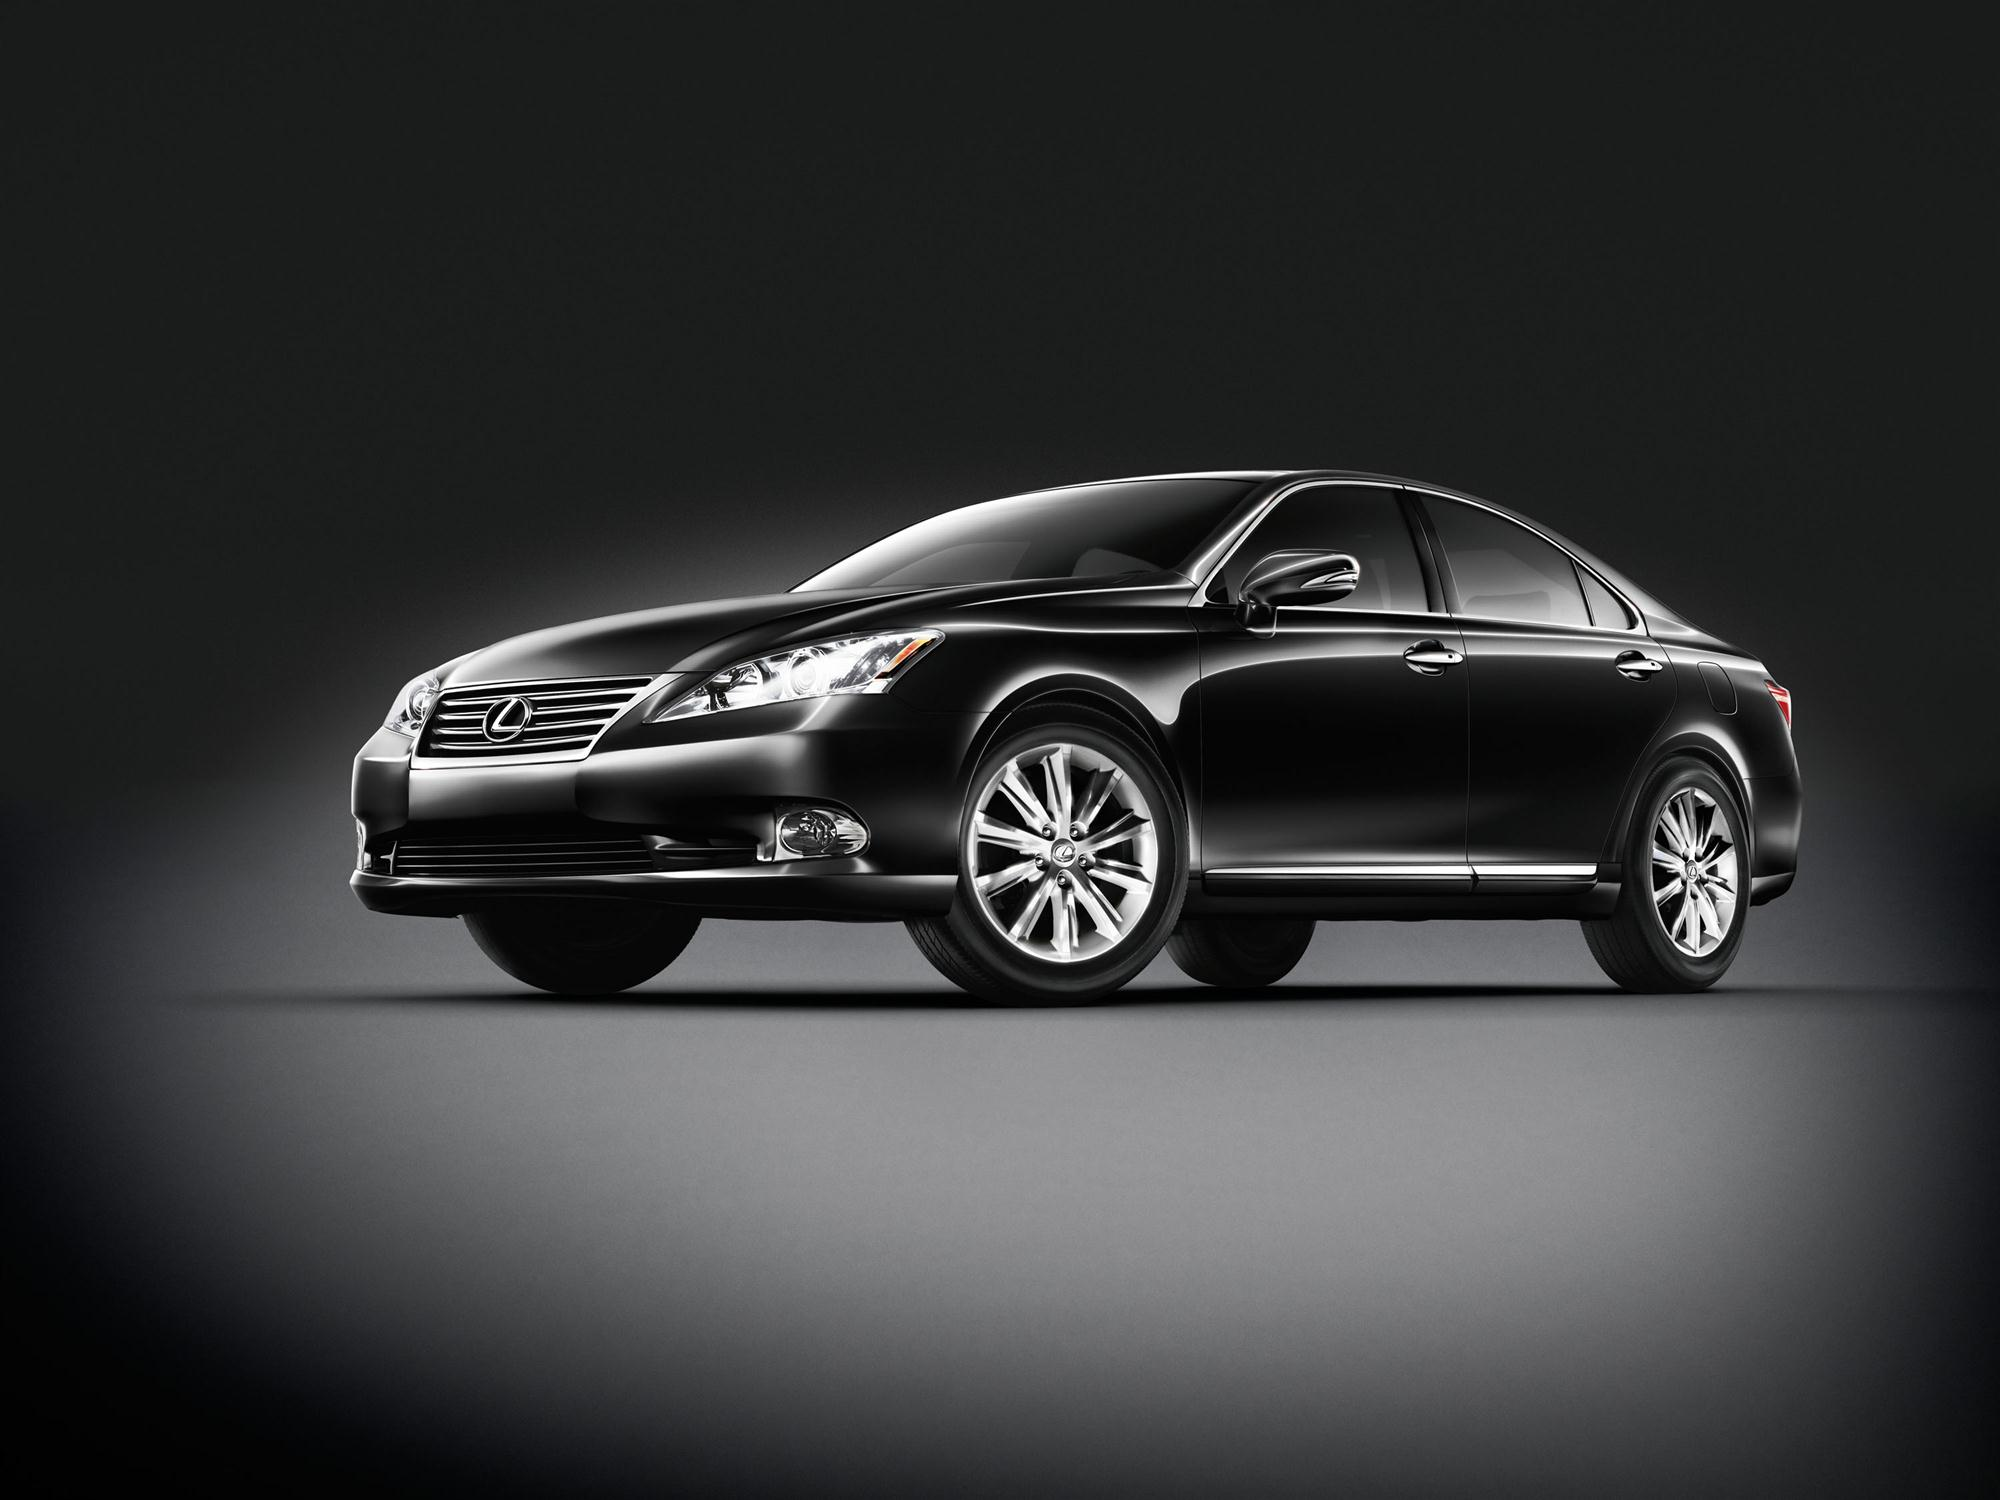 2012 Lexus Es 350 Review Ratings Specs Prices And